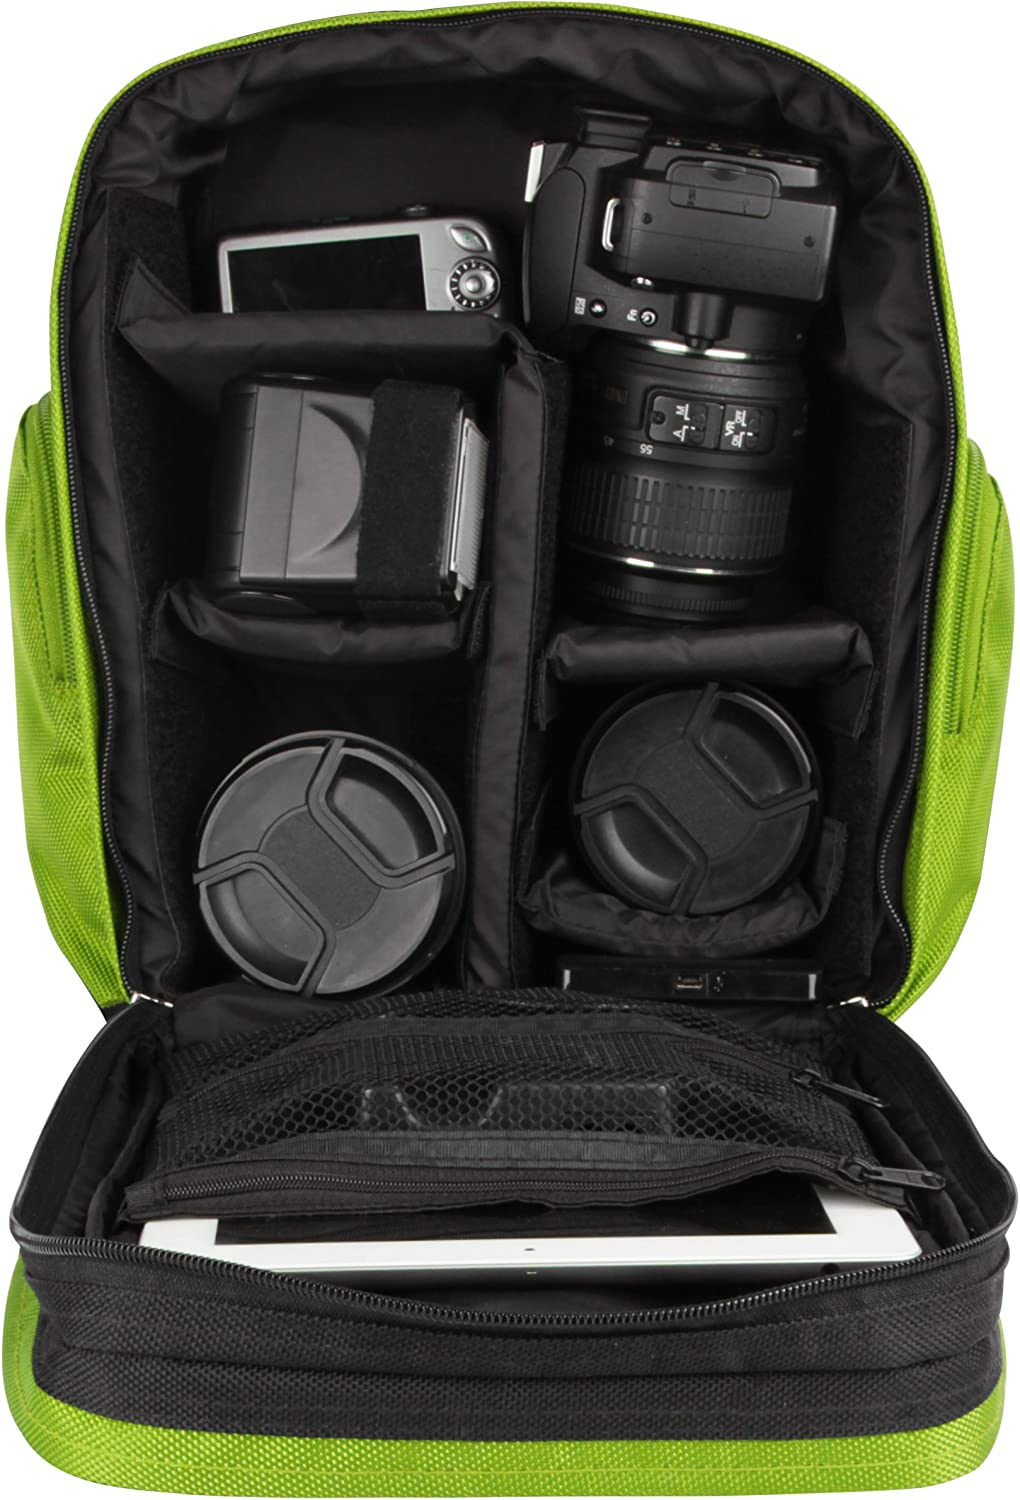 D810 D600 D800E D750 D300S D610 Black and Green D810A VanGoddy Sparta Travel Backpack for Nikon D7200 Df D7000 D700 Digital SLR Cameras and Mini Tripod and Screen Protector D800 D7100